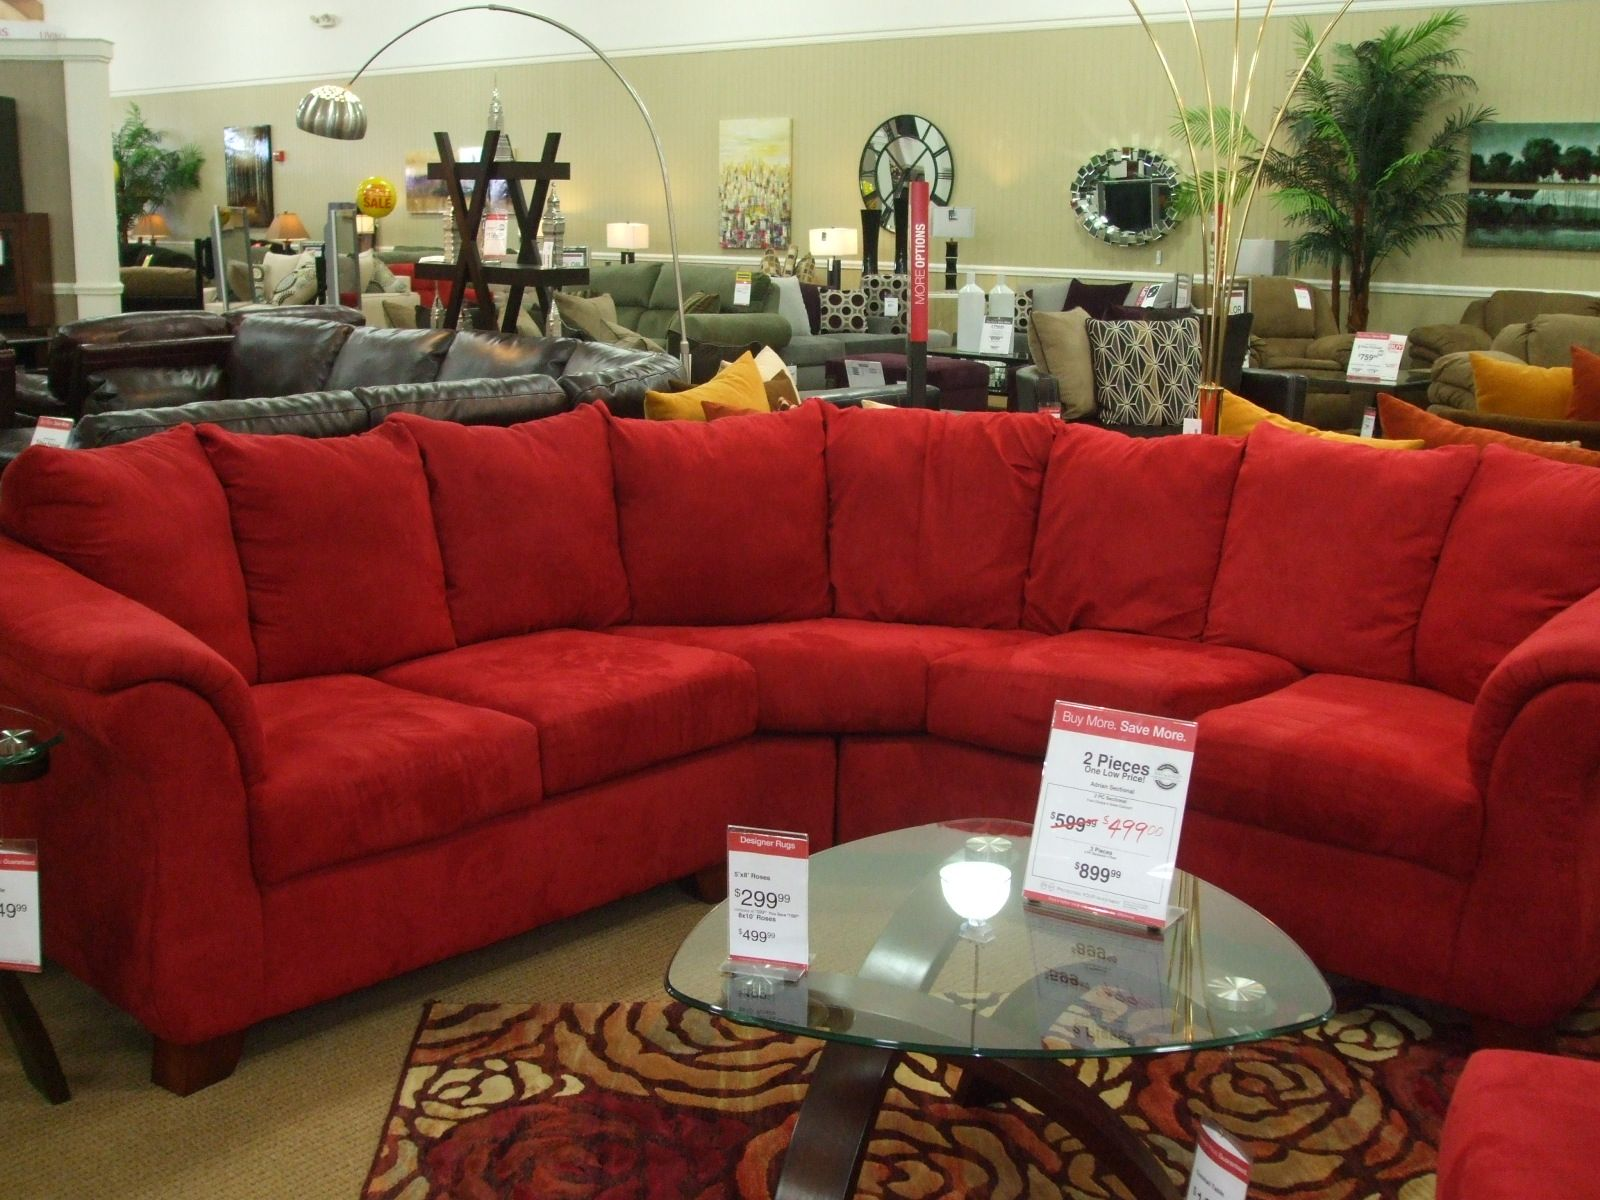 Value City Sectional Sofa Best Collections Of Sofas And Couches Sofacouchs Com Small Sectional Sofa Sectional Sofa Furniture